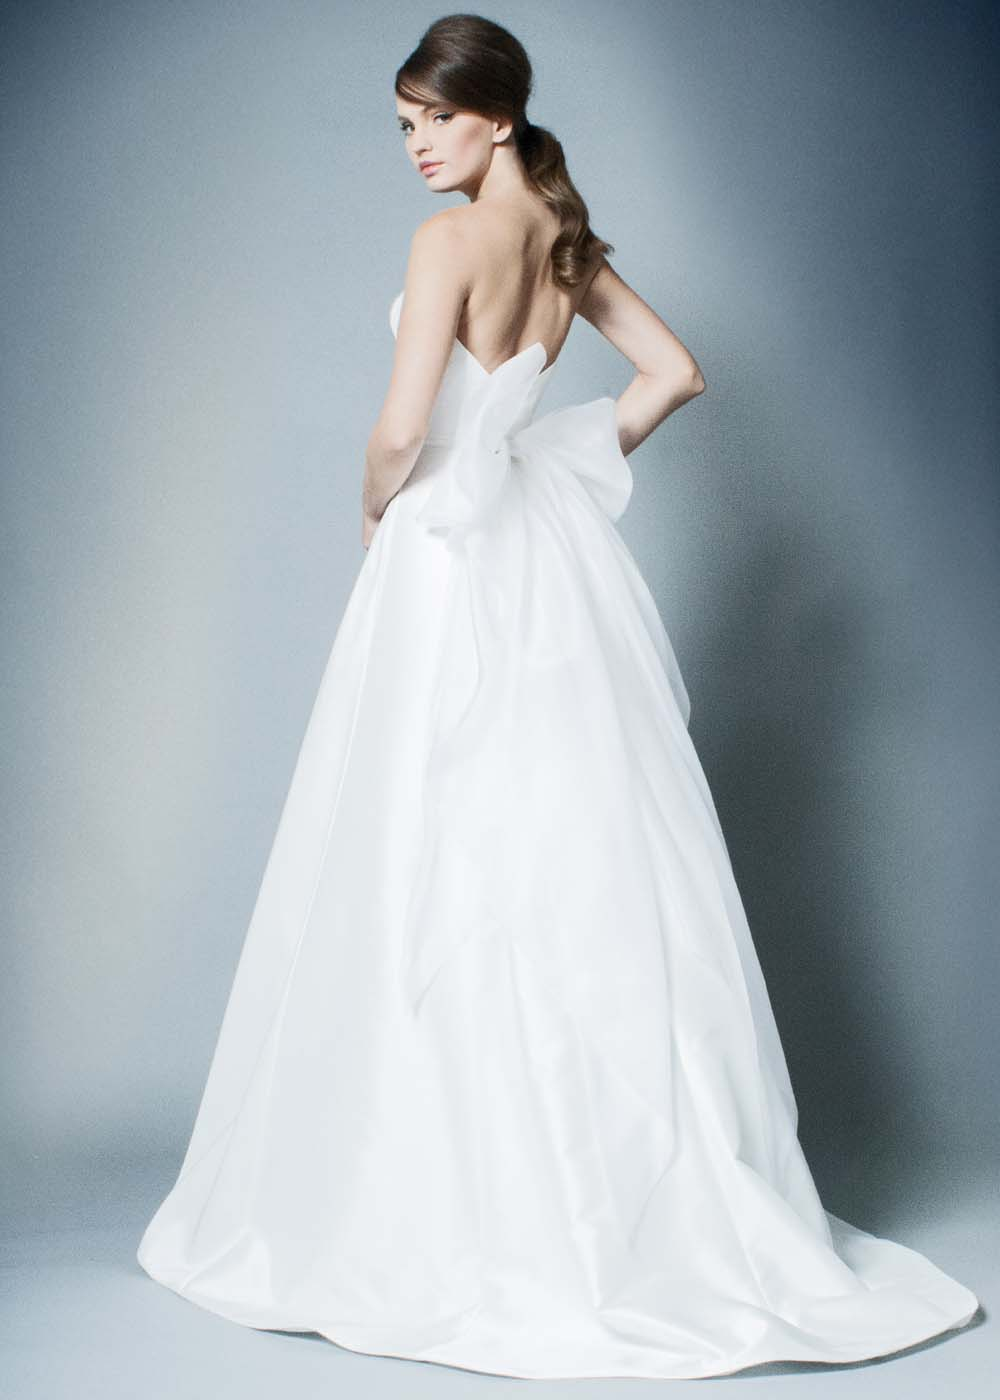 The Top Wedding Dress Trends For Spring 2019 | Weddingbells